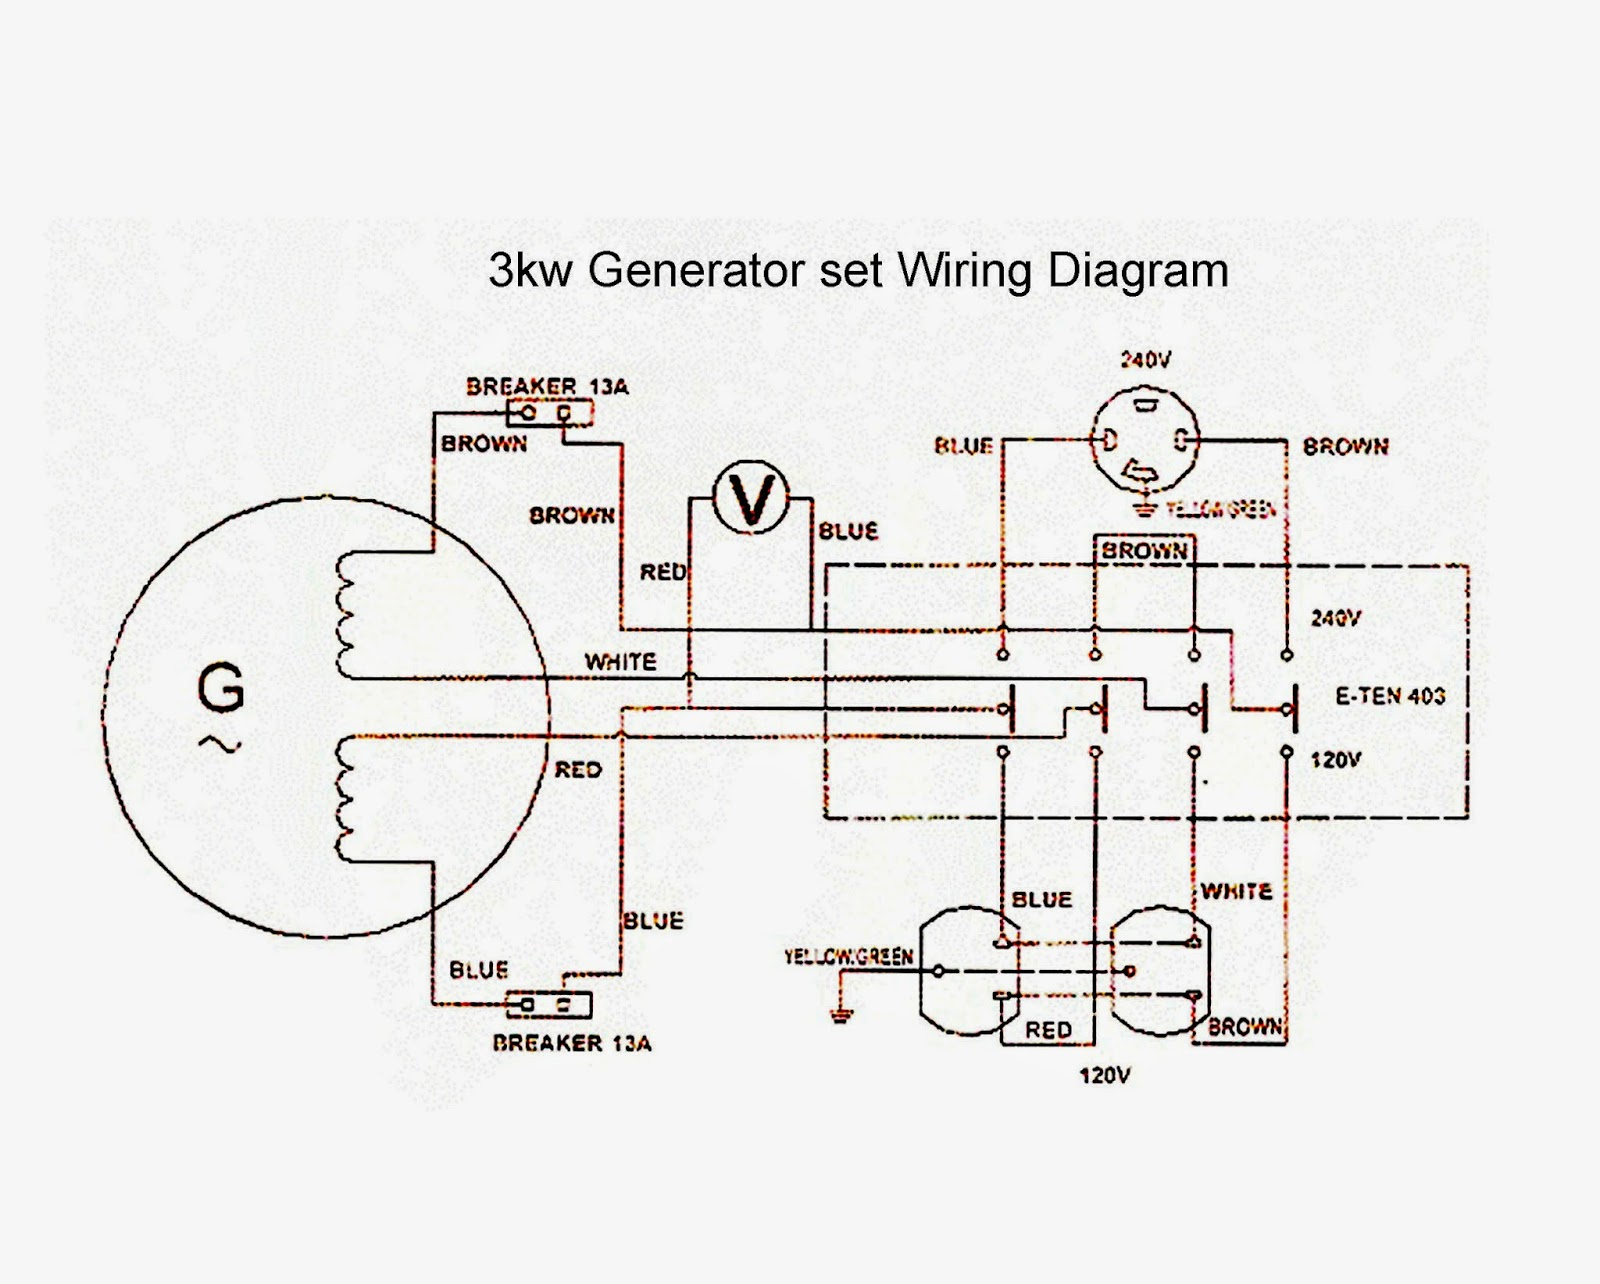 wiring diagram for 220 volt generator plug 2000 ford expedition starter solenoid july 2014 electrical winding diagrams